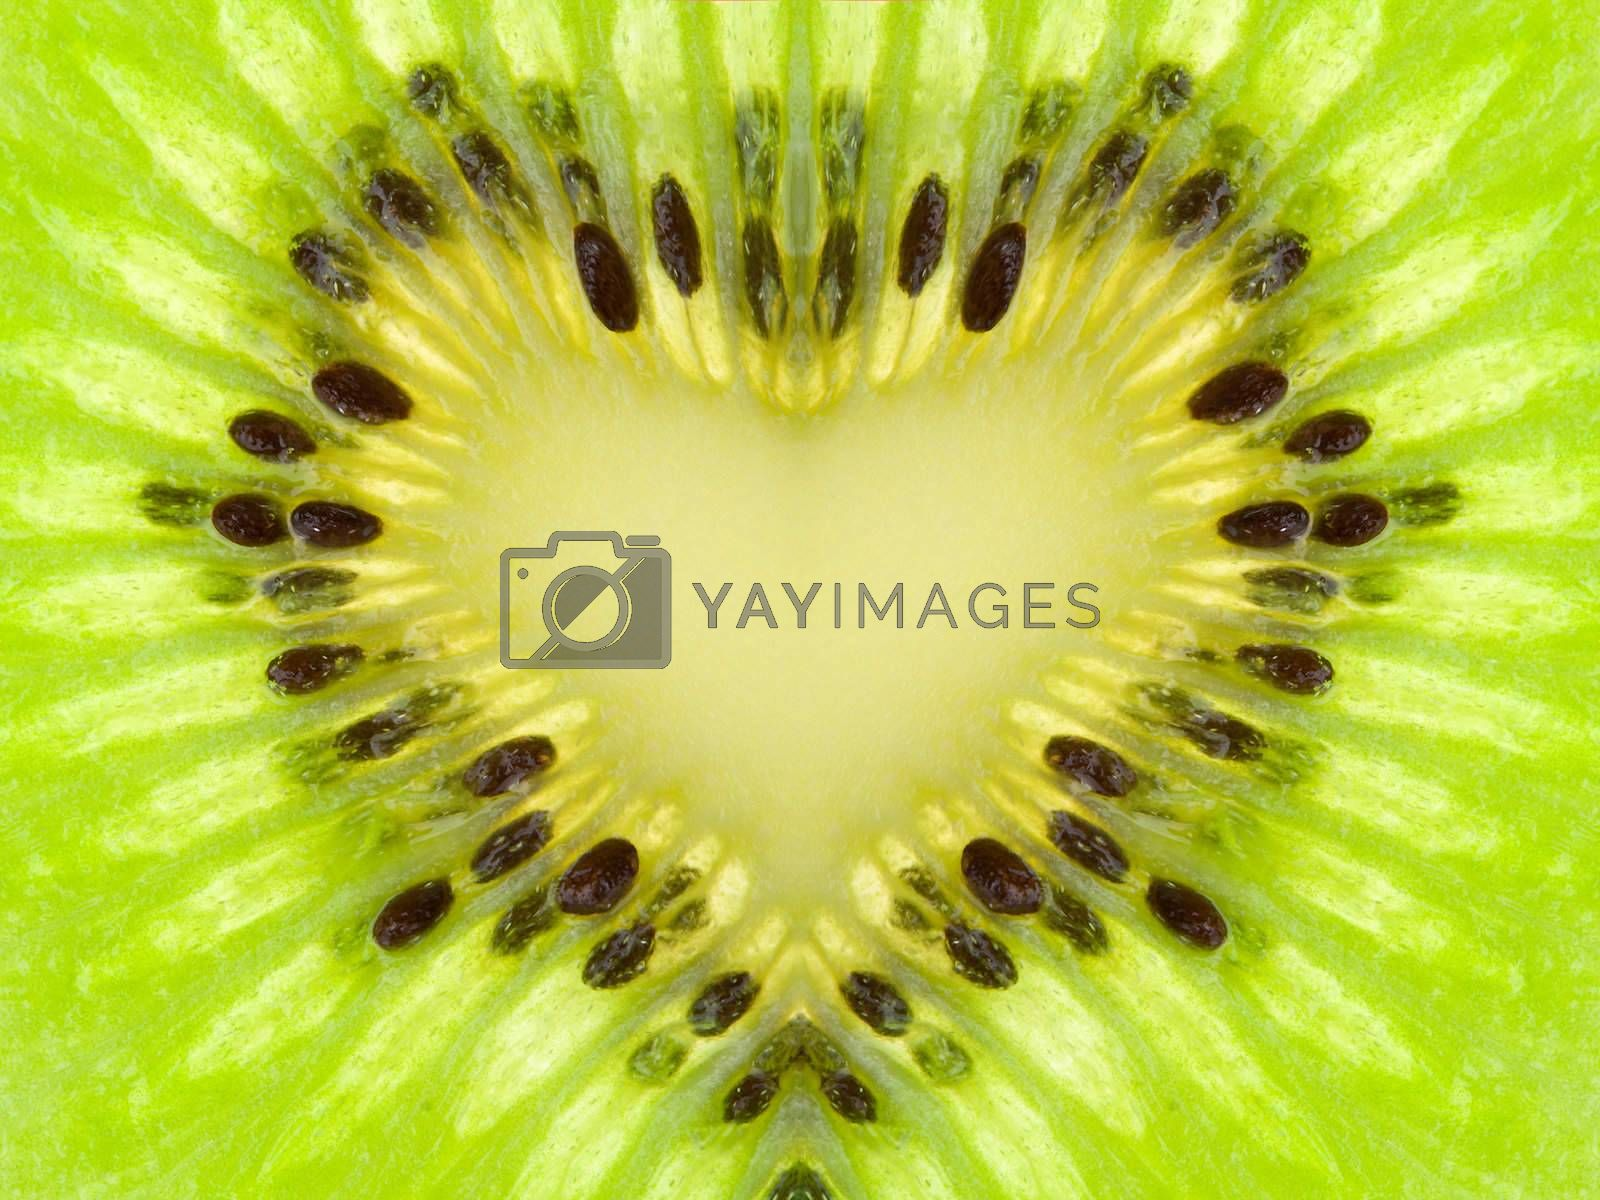 Royalty free image of green heart from kiwi by Alekcey